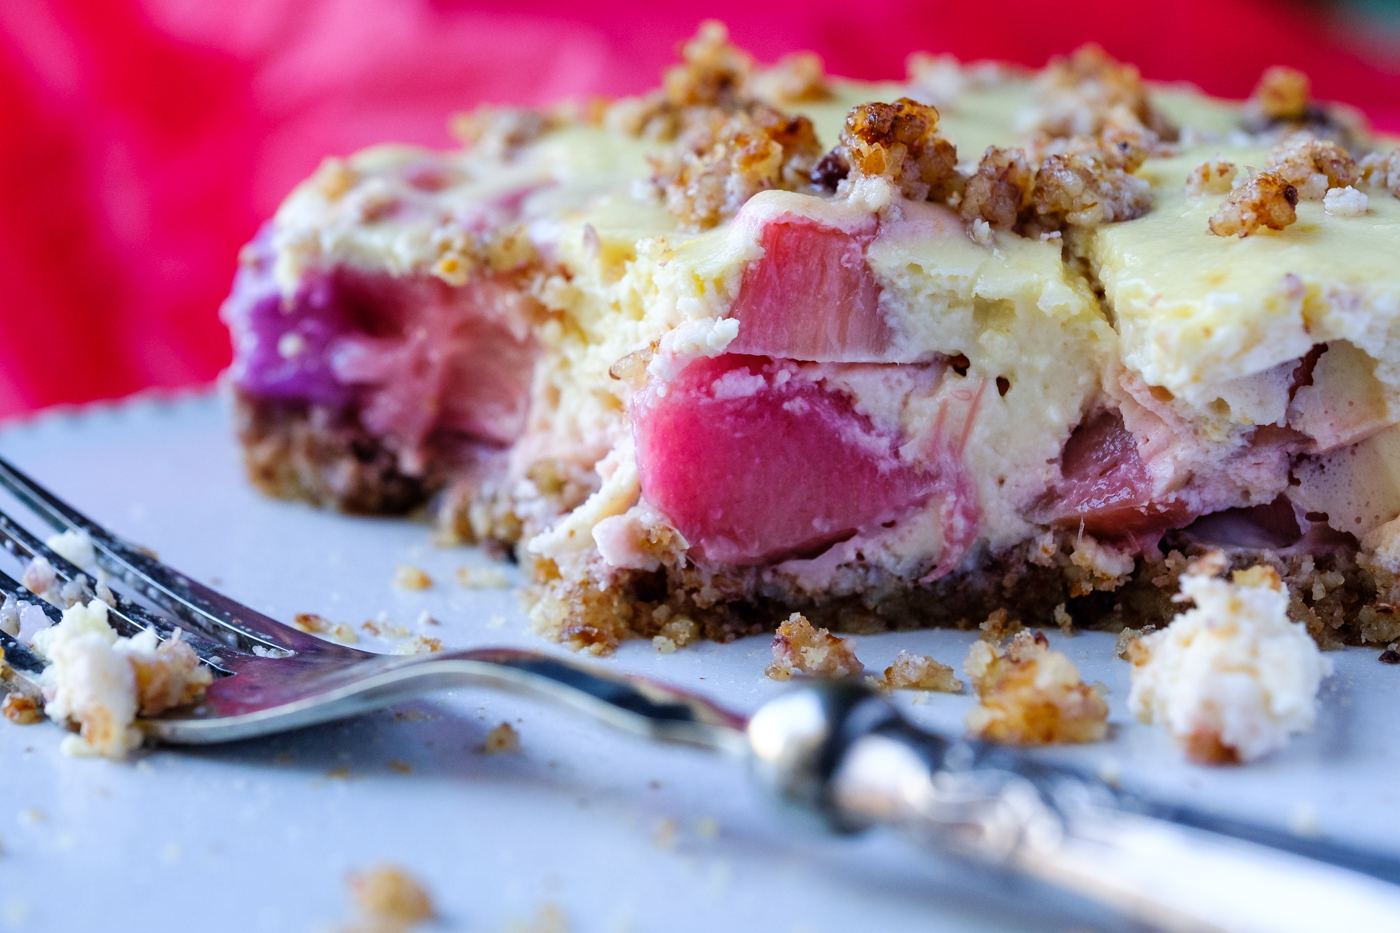 Rhubarb and Almond Cheese Tart with Pecan Crumble